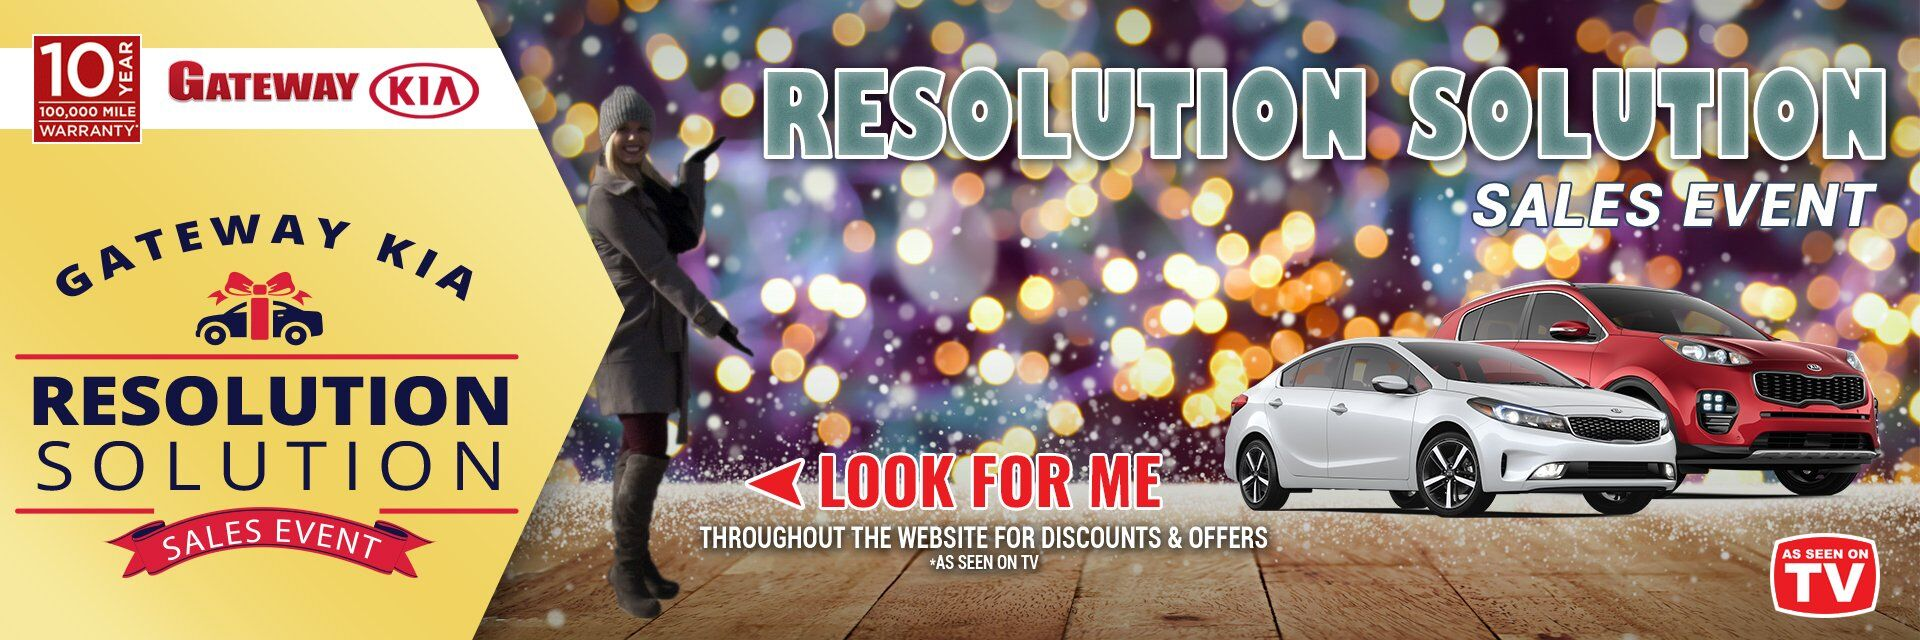 Resolution Solution Sales Event